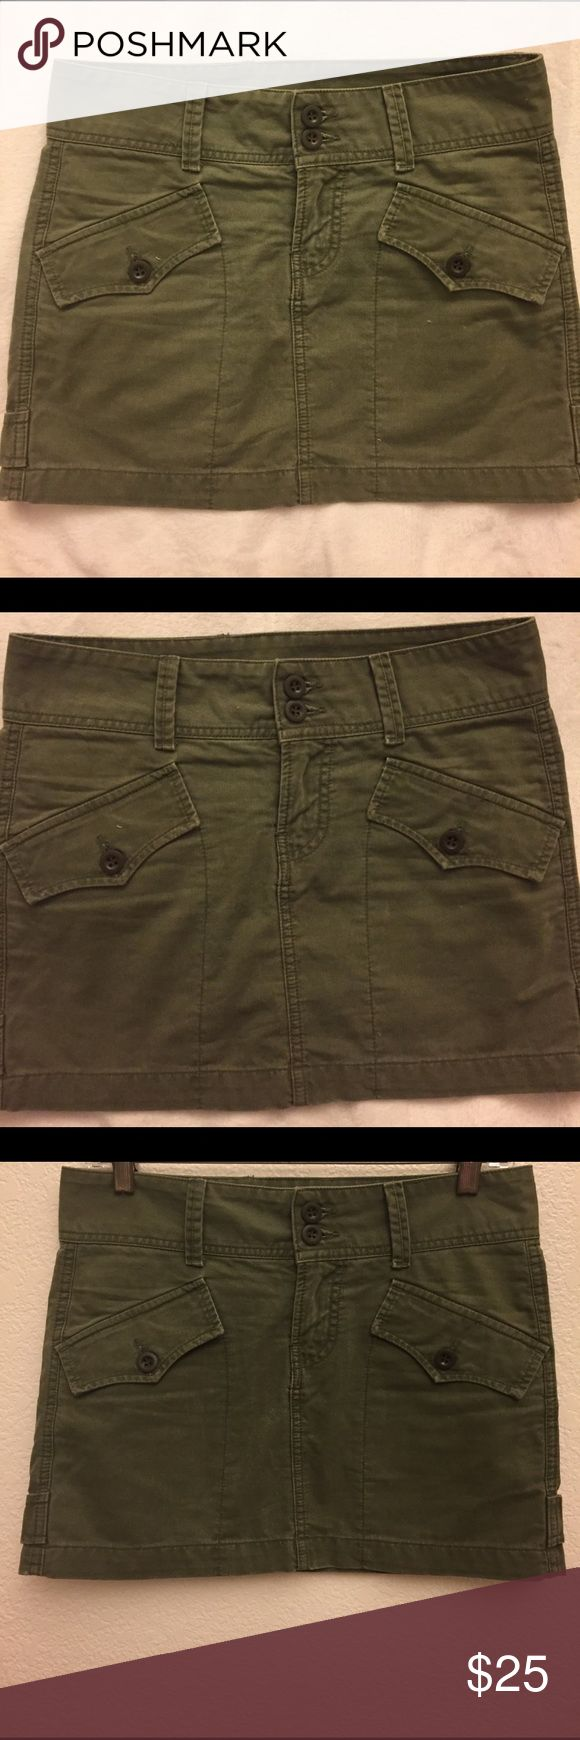 """Lucky Brand Skirt  Army Green,  cotton, size 25, waist 31"""", length 13"""". In excellent condition. Lucky Brand Skirts Mini"""